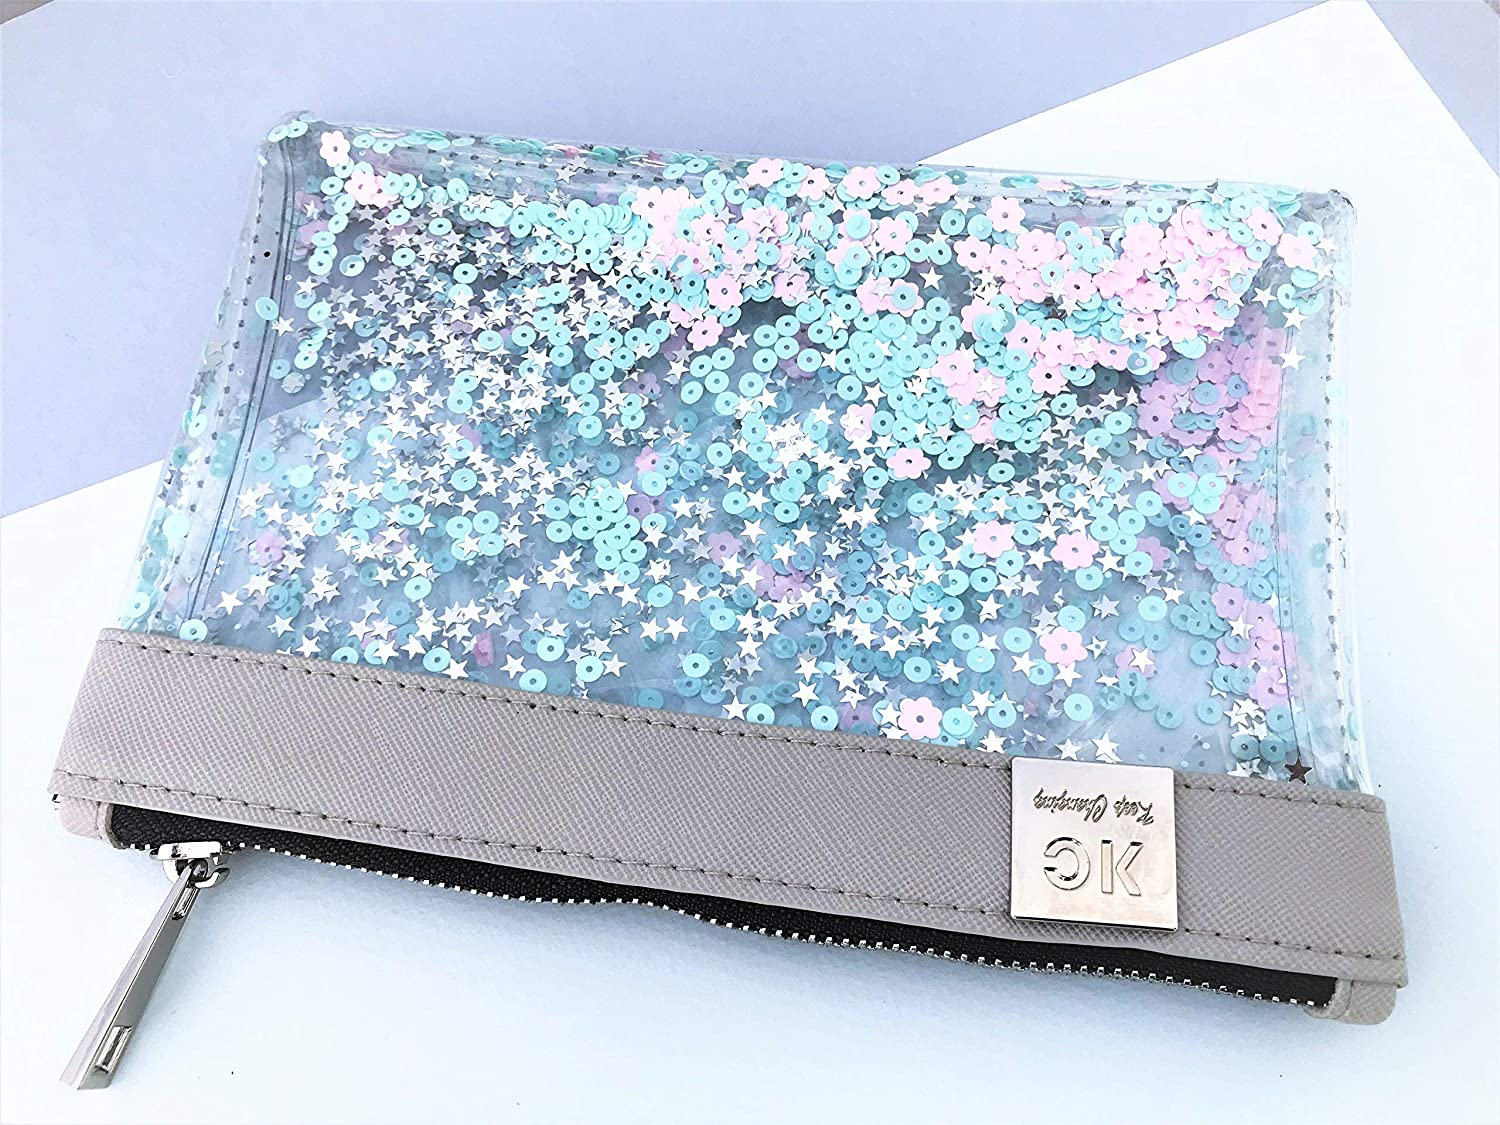 Designer Pastel Glitter Clear Pencil Case, Small Pink, Light Green and Silver Sequin Makeup Bag, Transparent Pencil Pouch